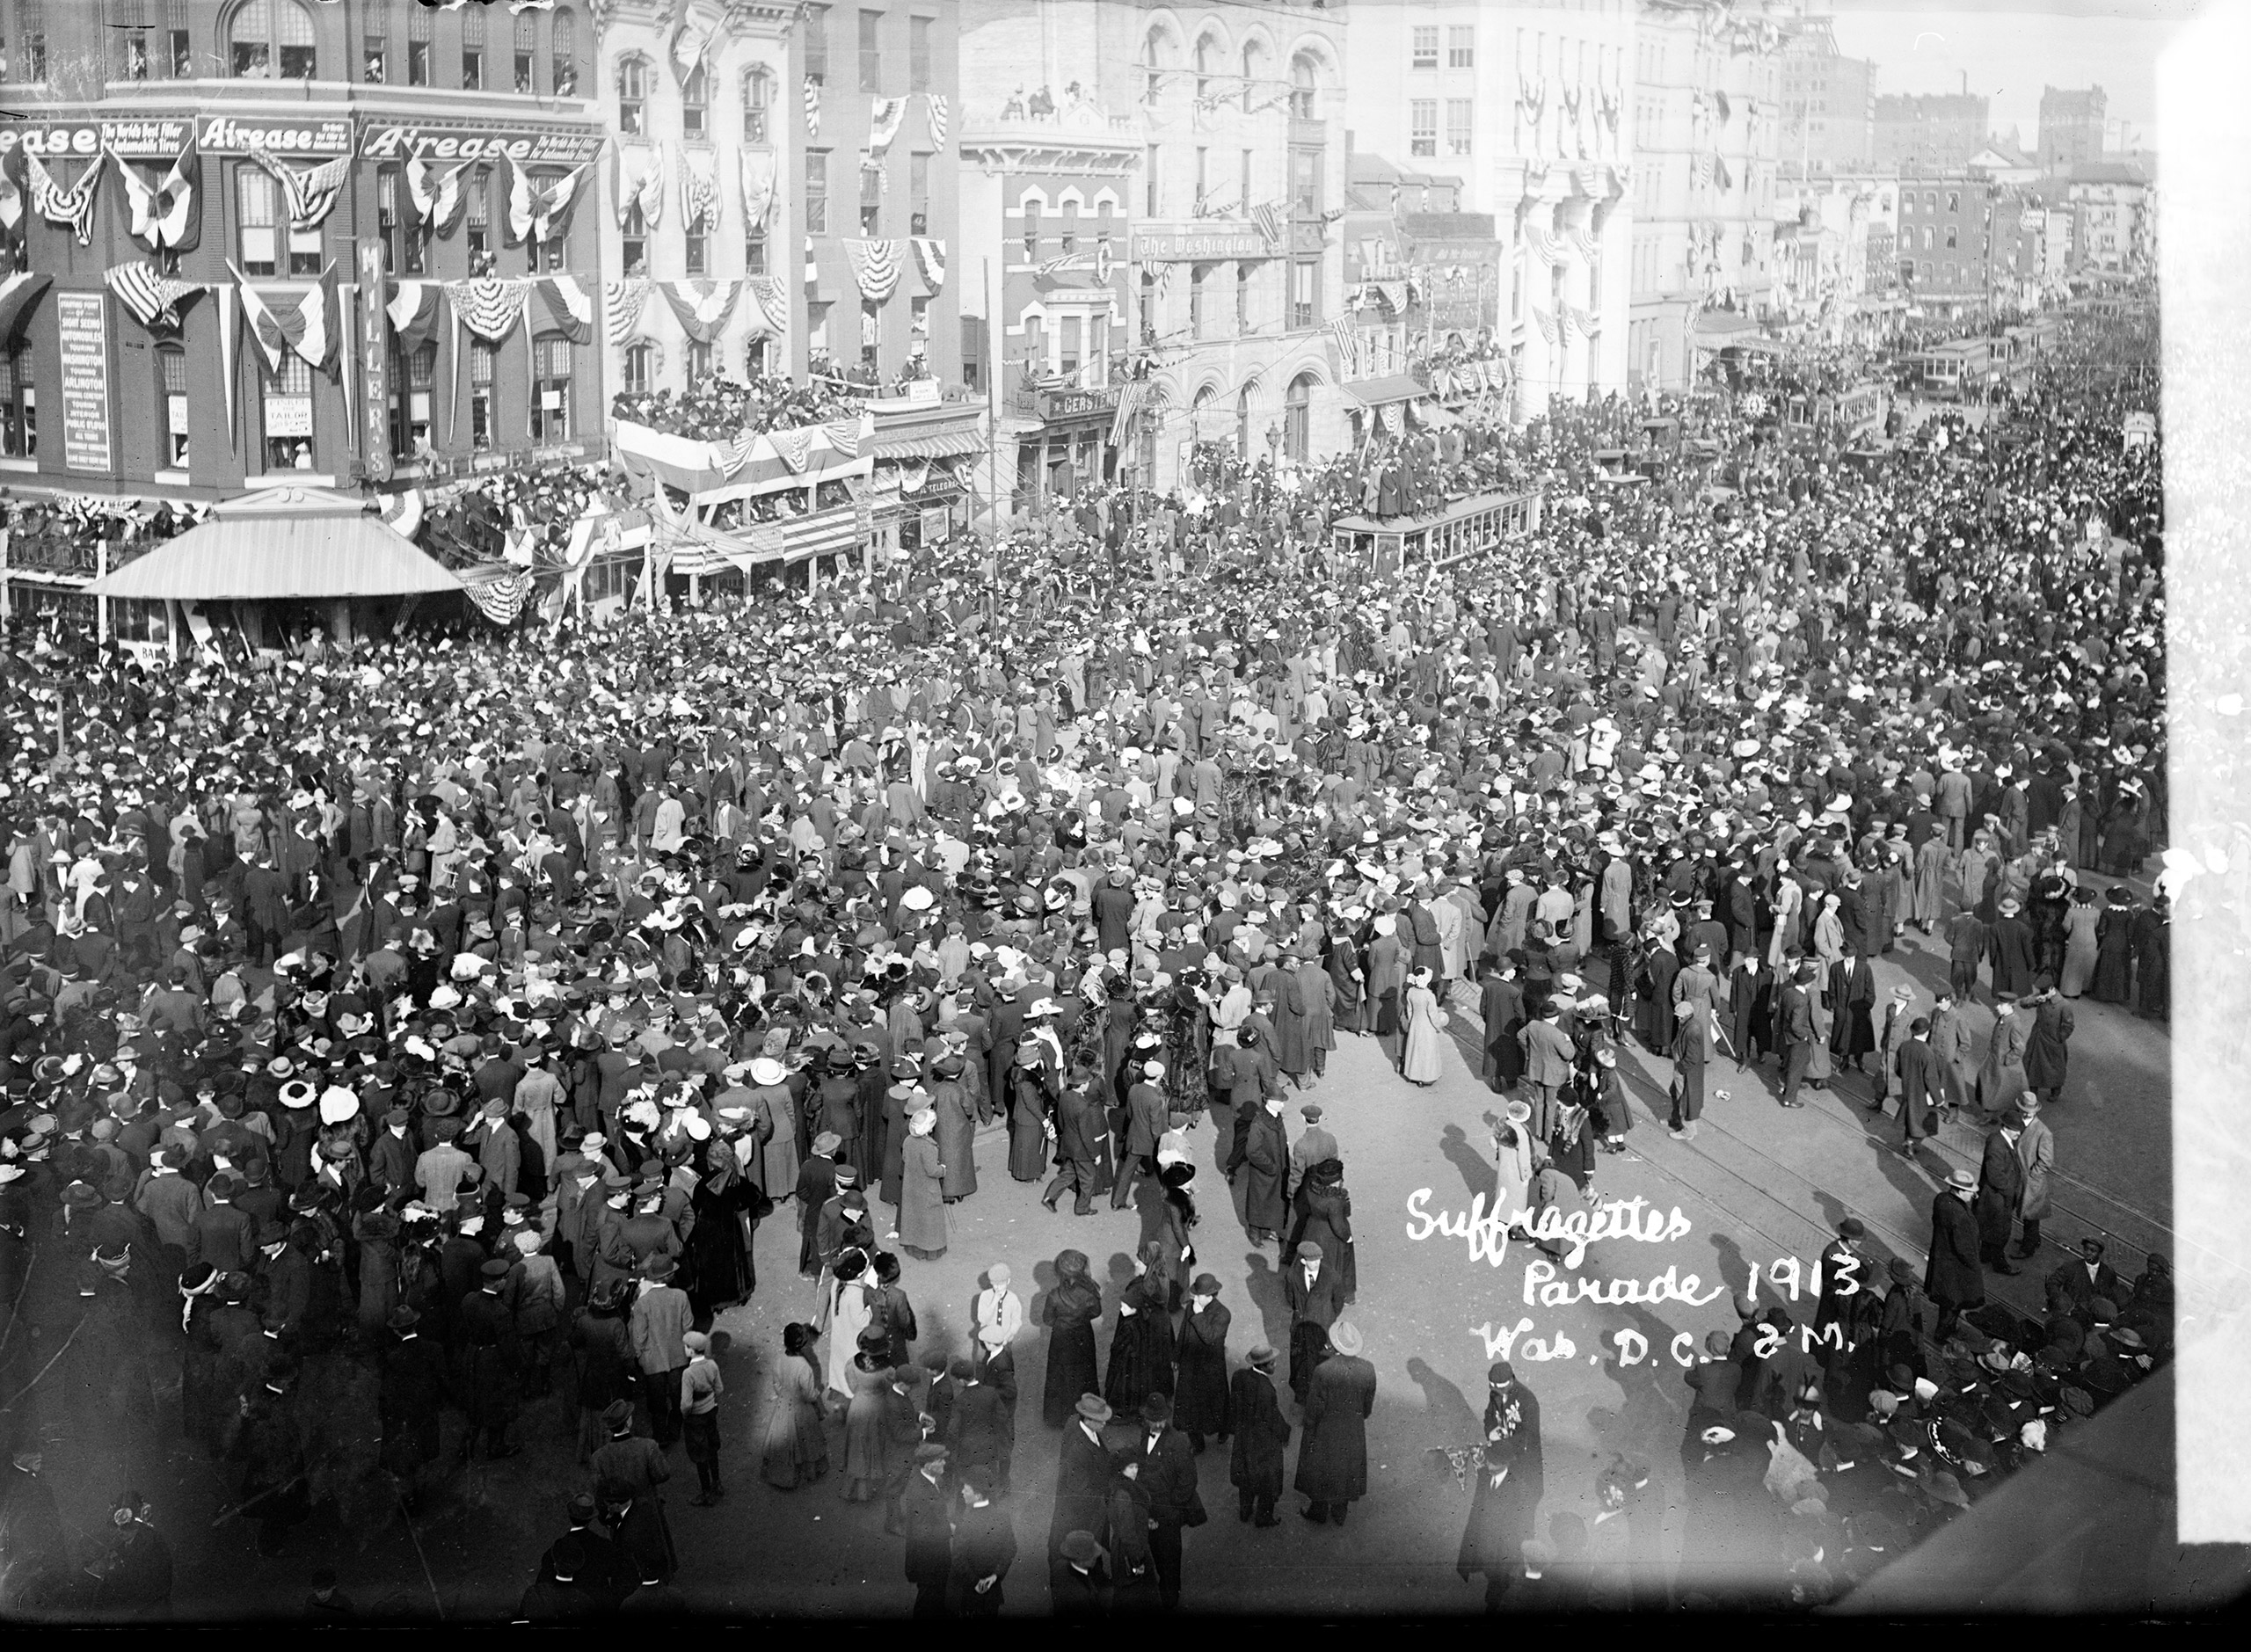 Suffrage parade, March. 3, 1913.